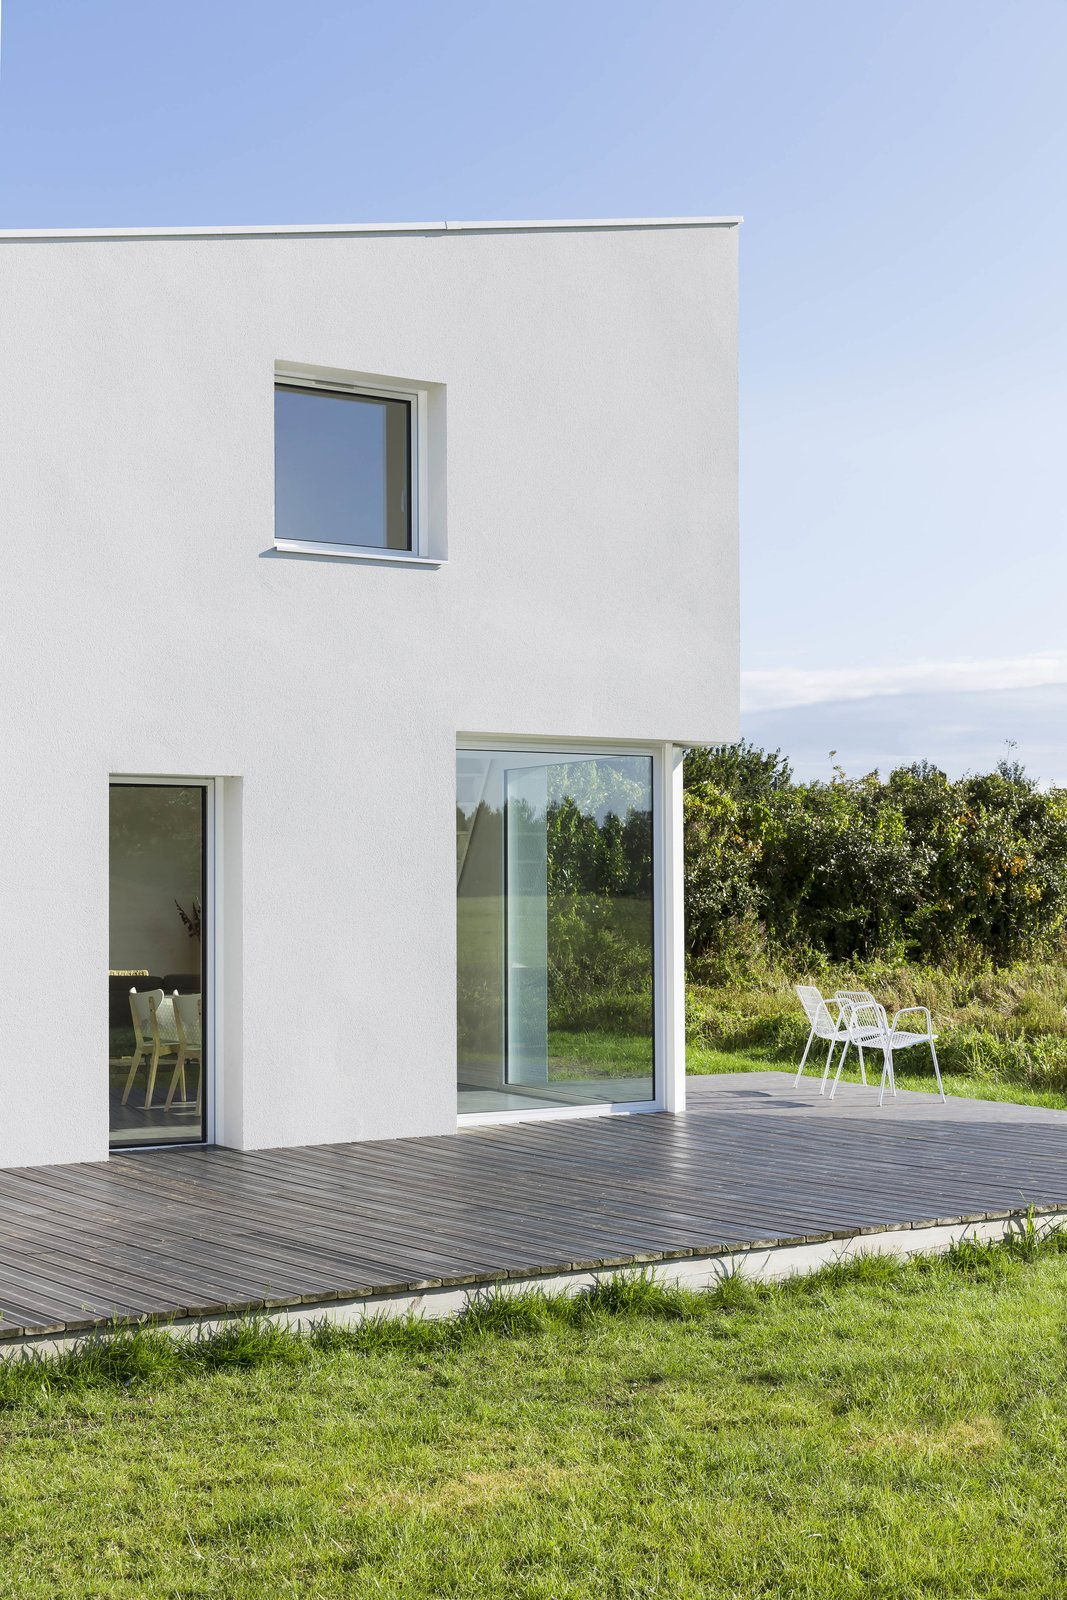 House for a Photographer by studio razavi architecture